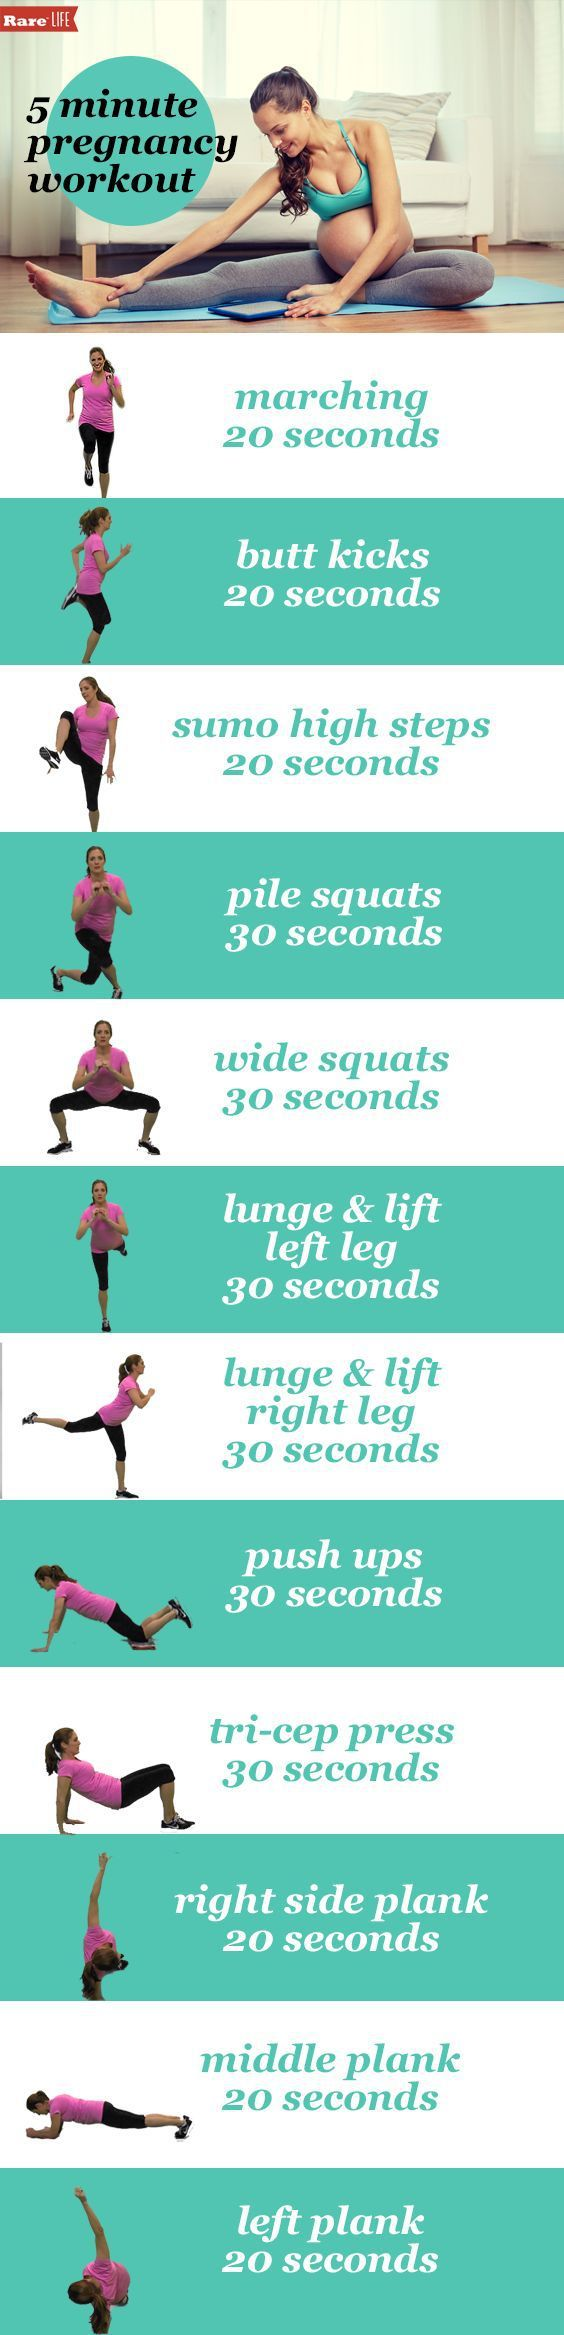 Heather's Maternity Workout: 5 minute strength workout